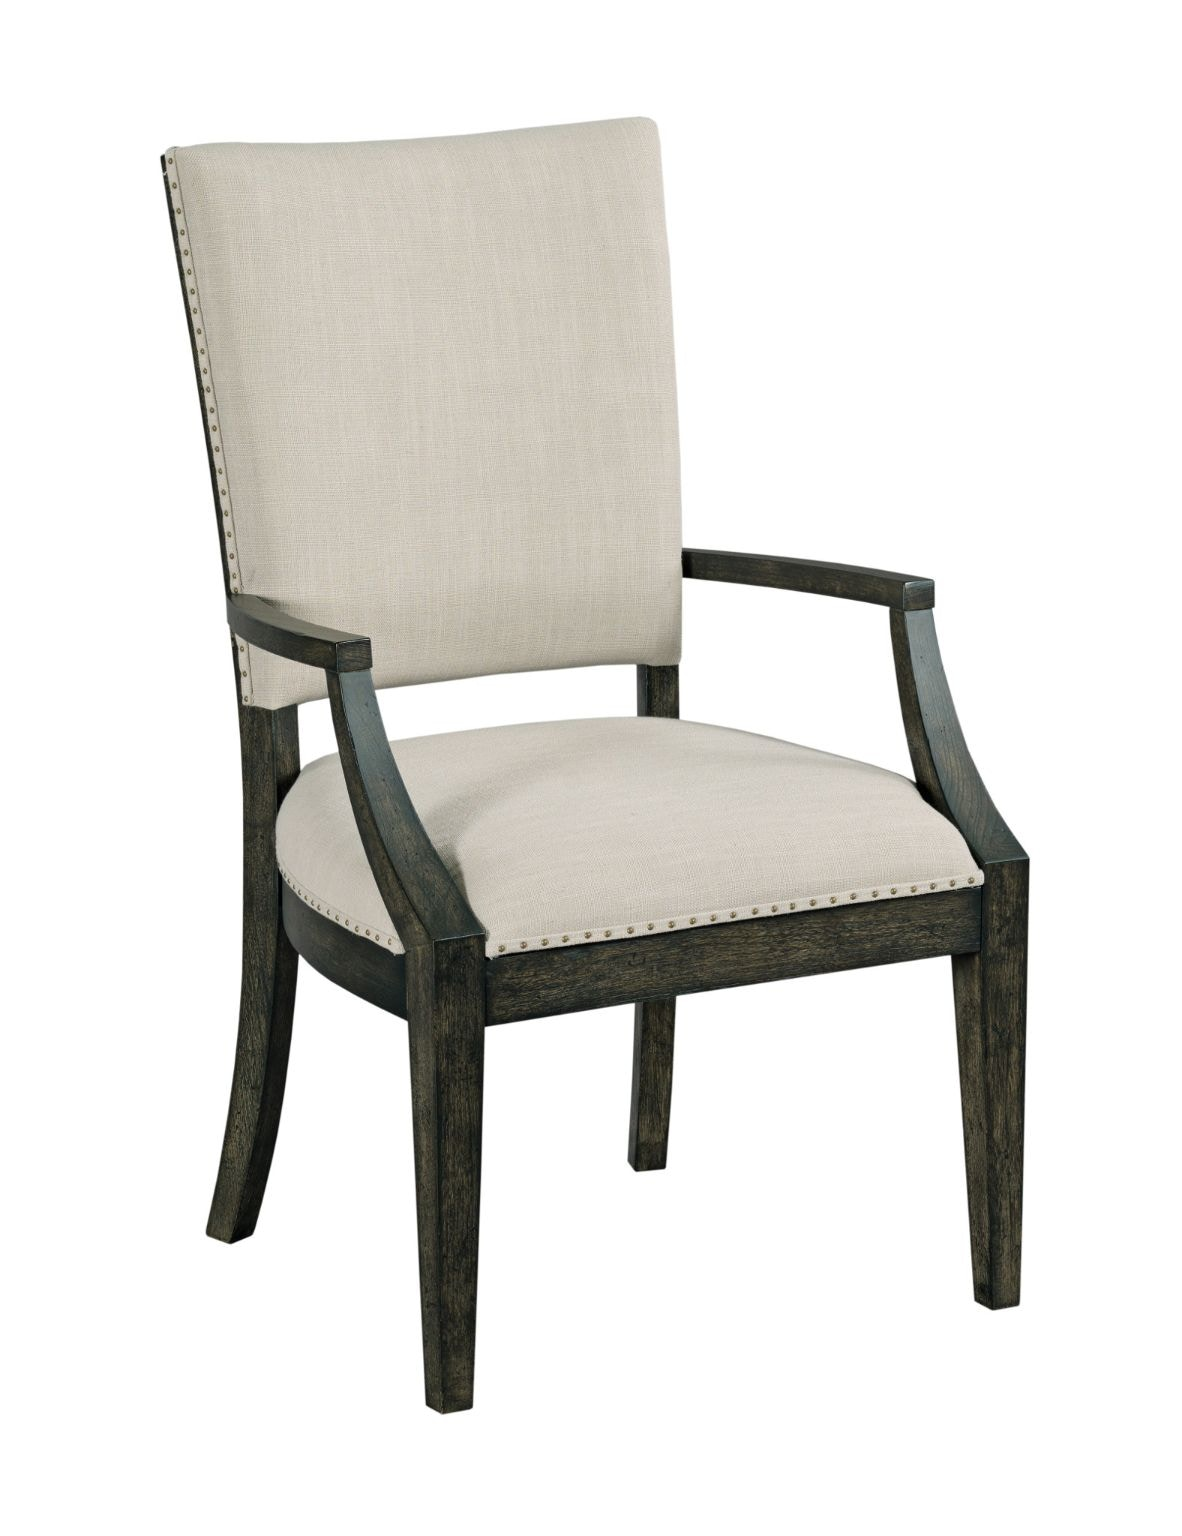 Kincaid Furniture Dining Room Howell Arm Chair 706 623c Abide